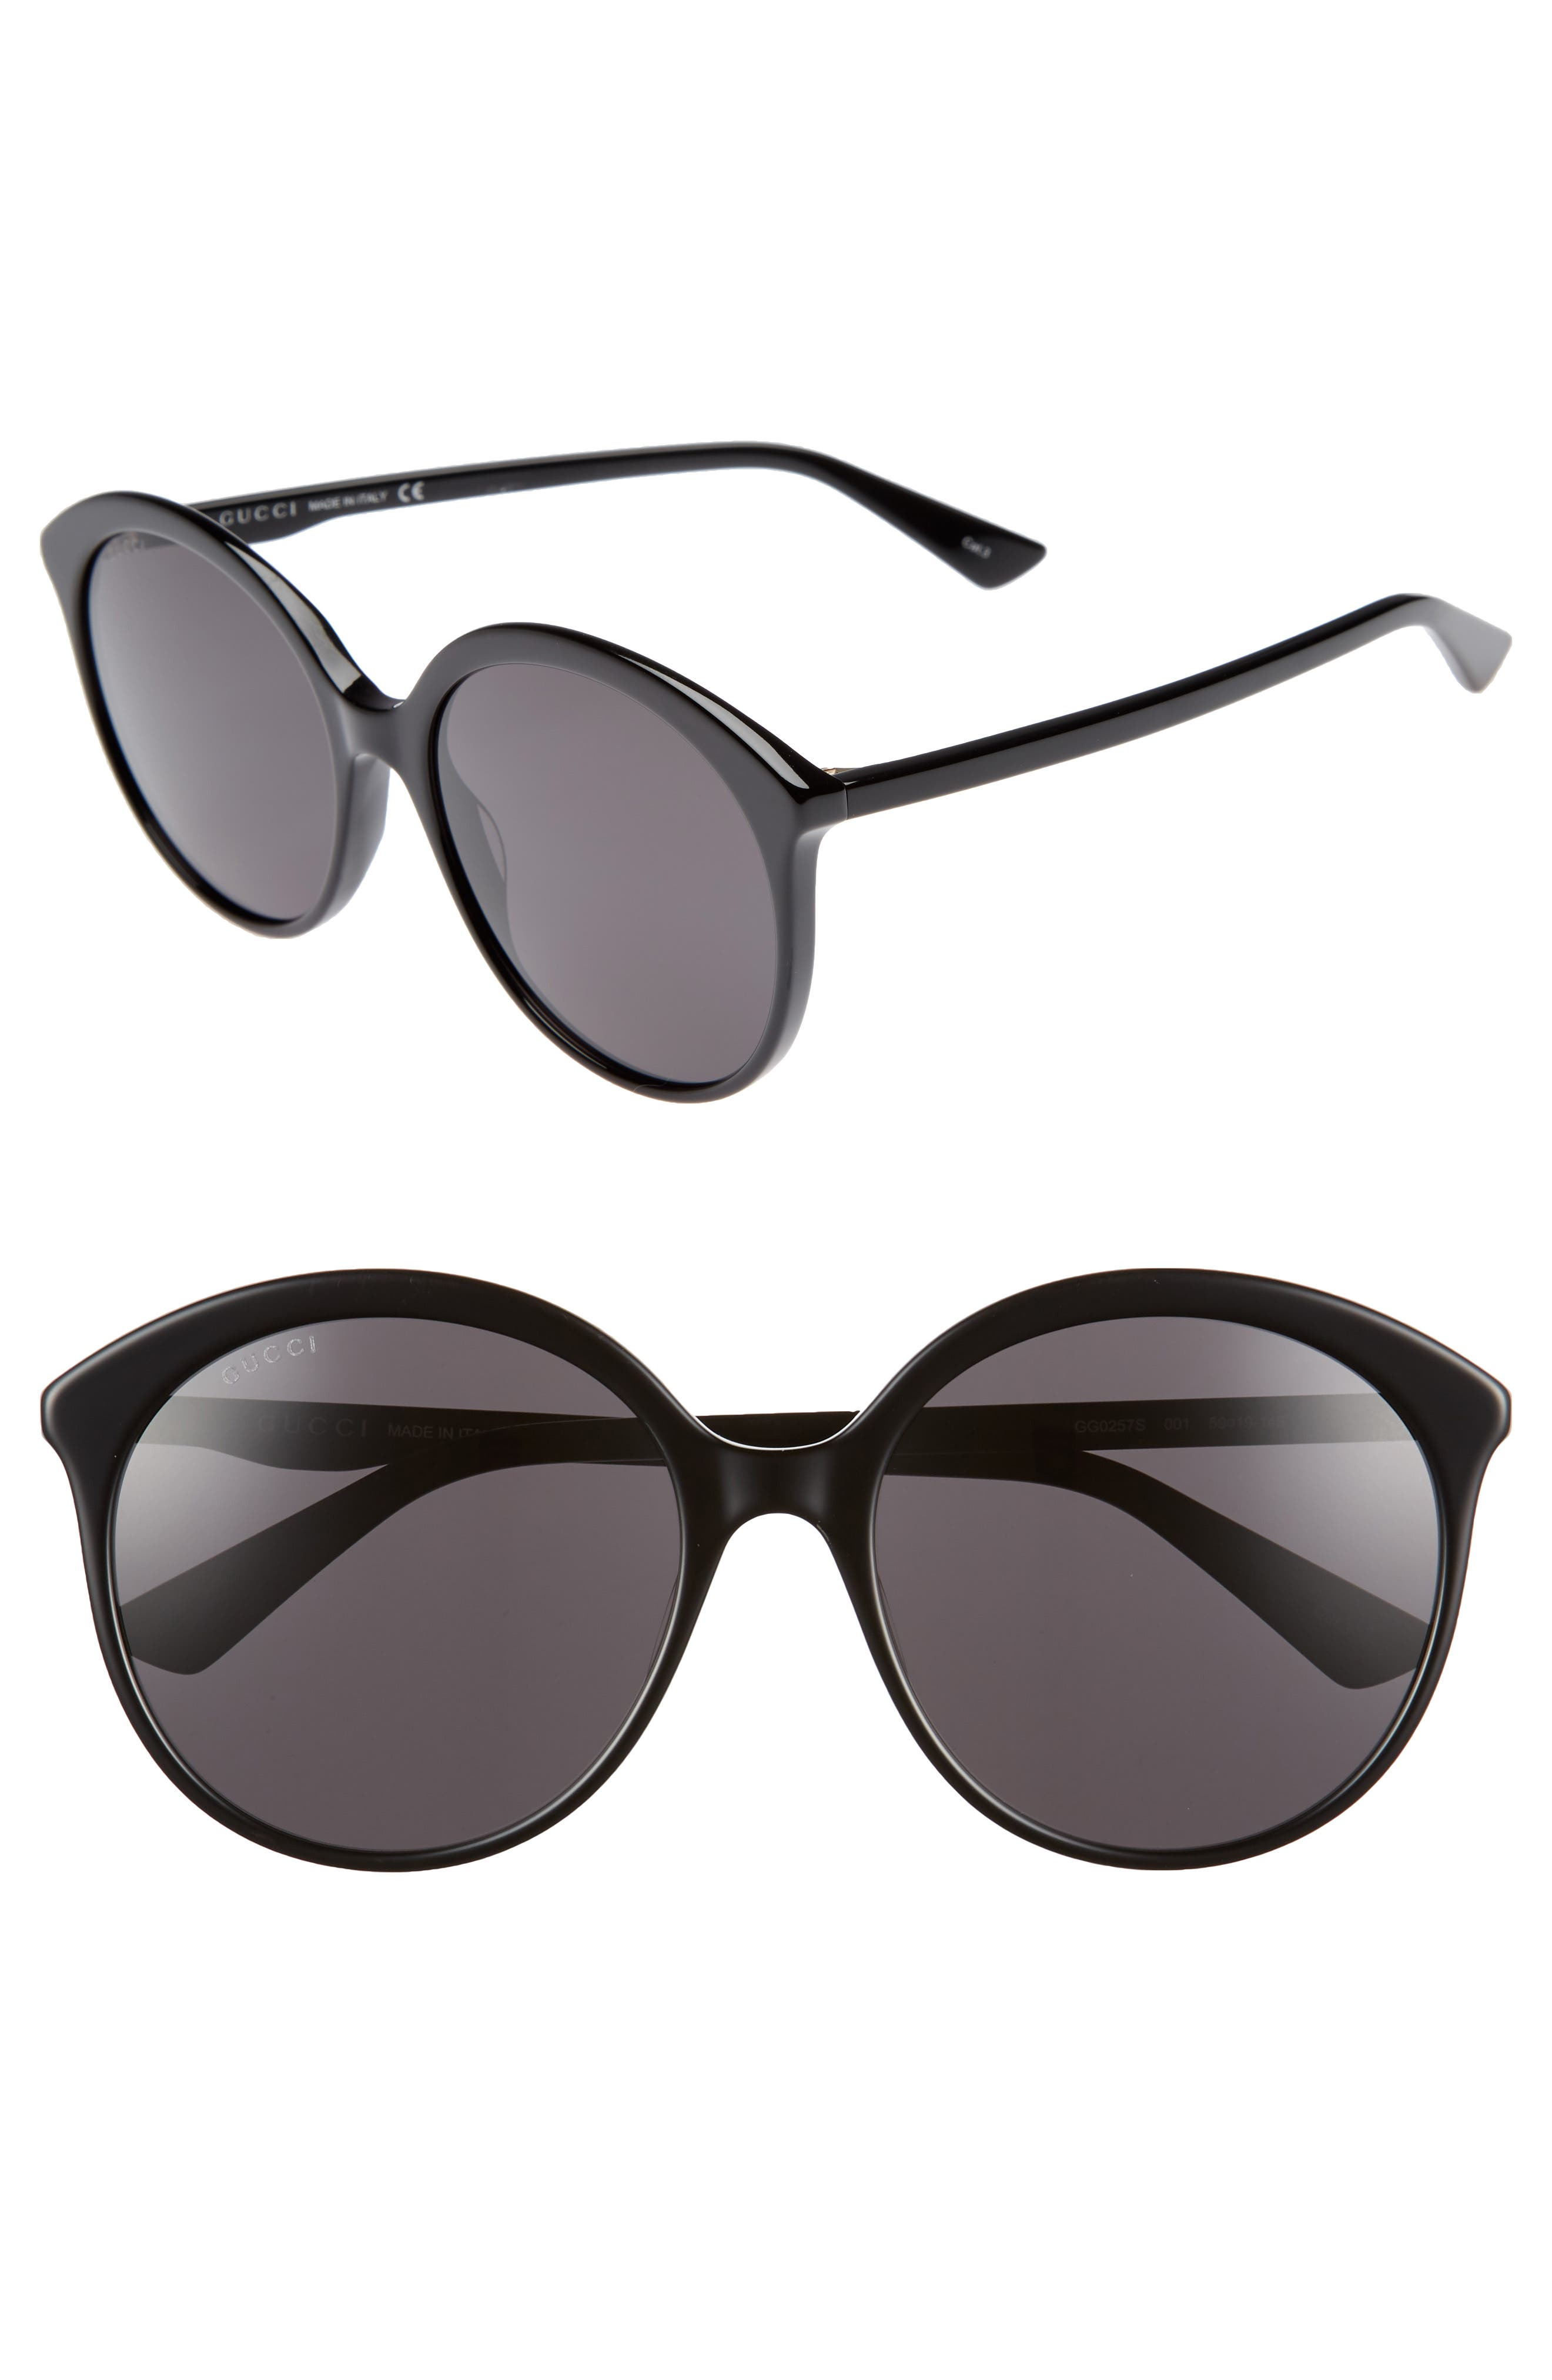 59mm Round Sunglasses,                             Main thumbnail 1, color,                             BLACK